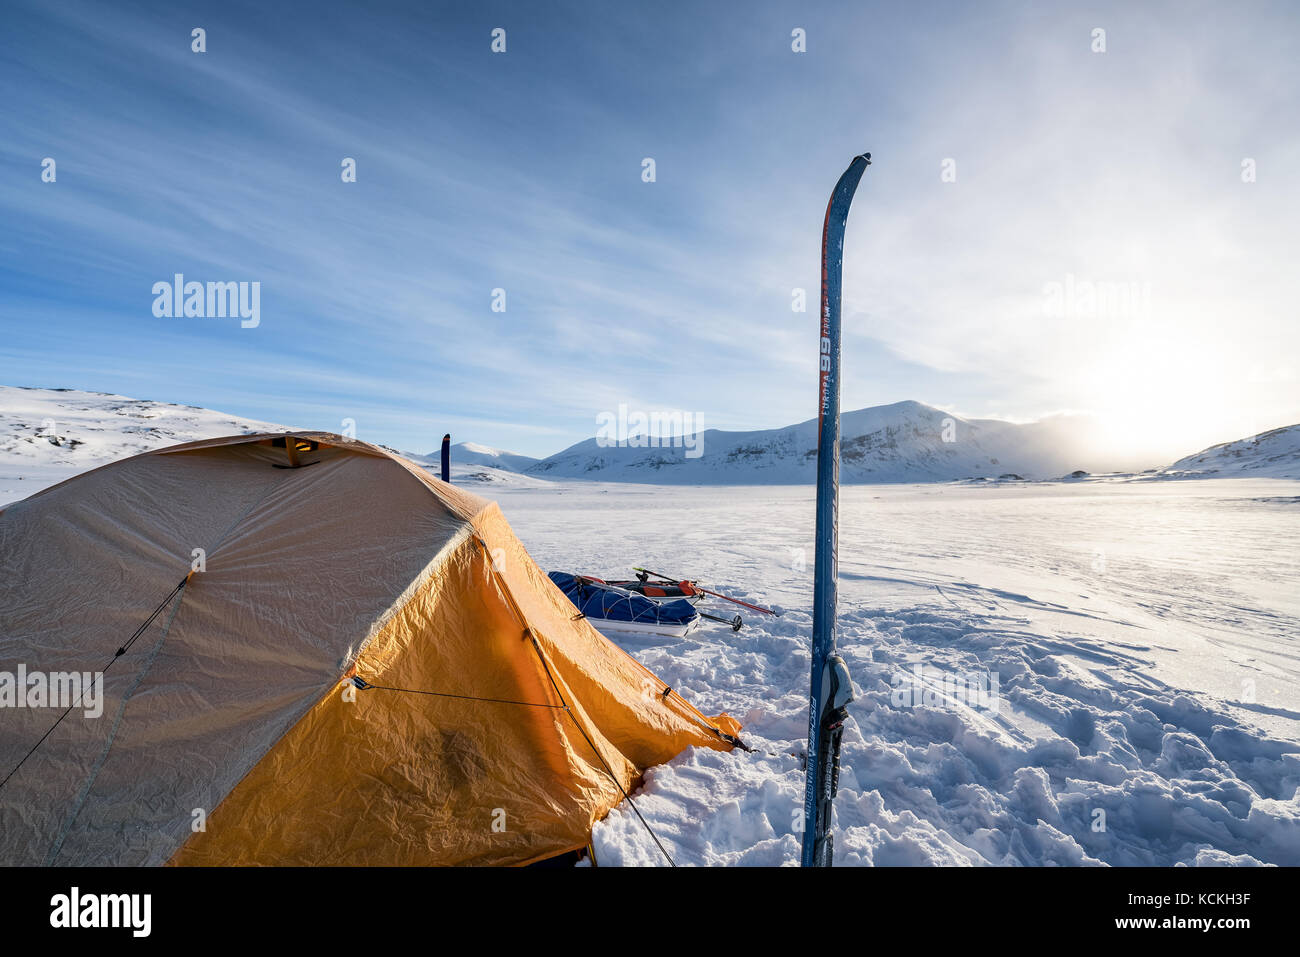 Ski touring in the Kebnekaise massive mountain range, Kiiruna, Sweden, Europe Stock Photo